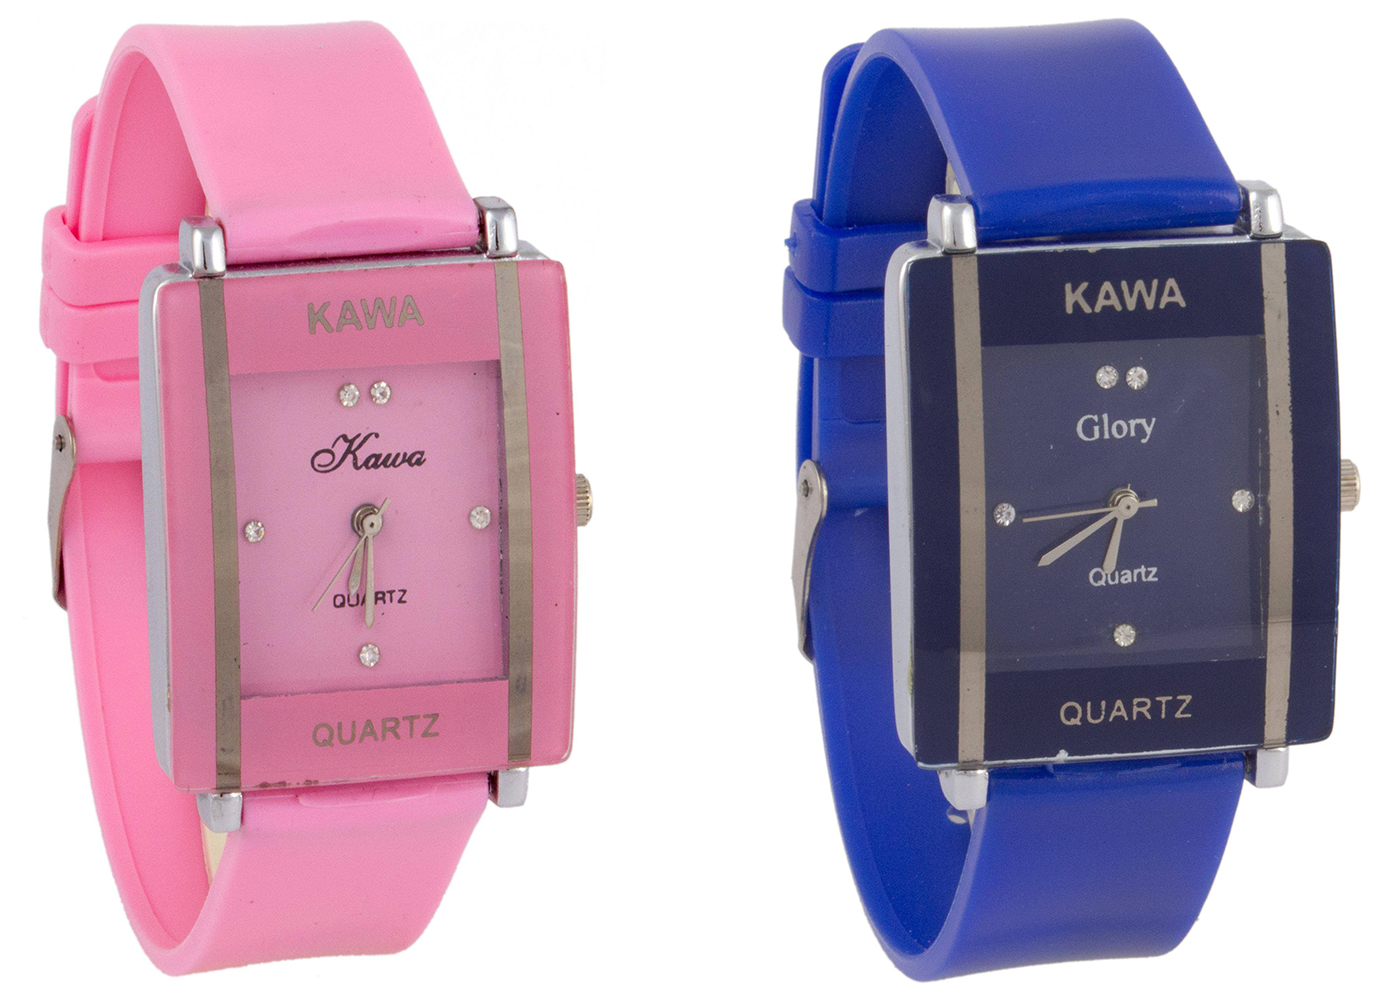 Glory Combo Of Two Watches-Baby Pink  Blue Rectangular Dial Kawa Watch For Women by  miss